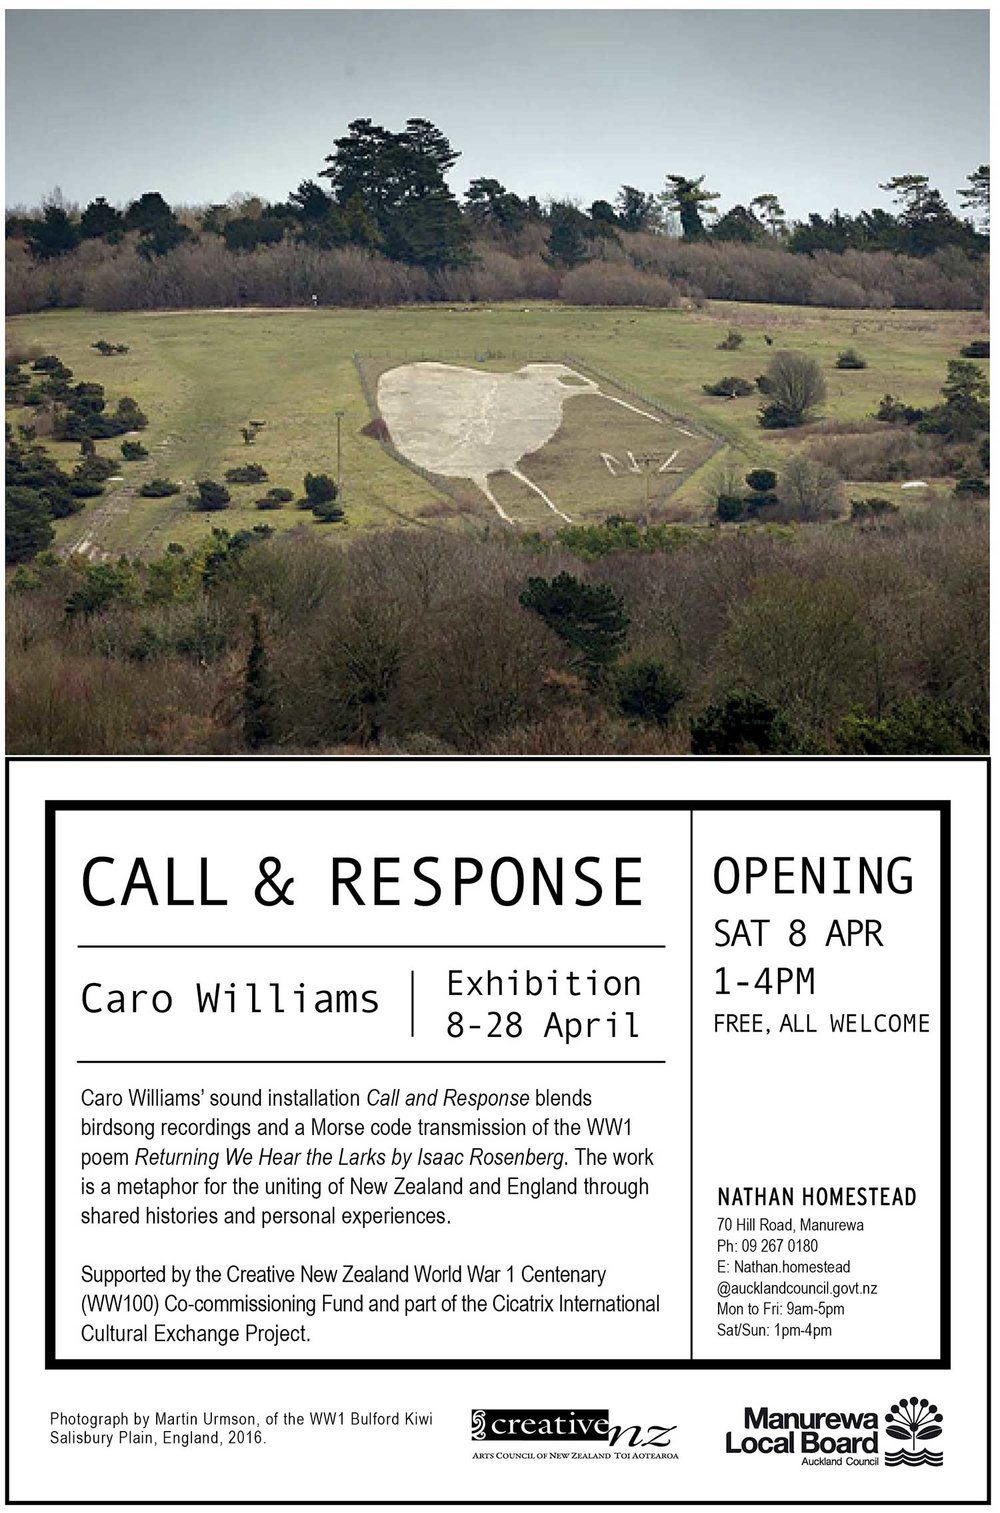 CallAndResponse-Postcard-email-Invite copy.jpg